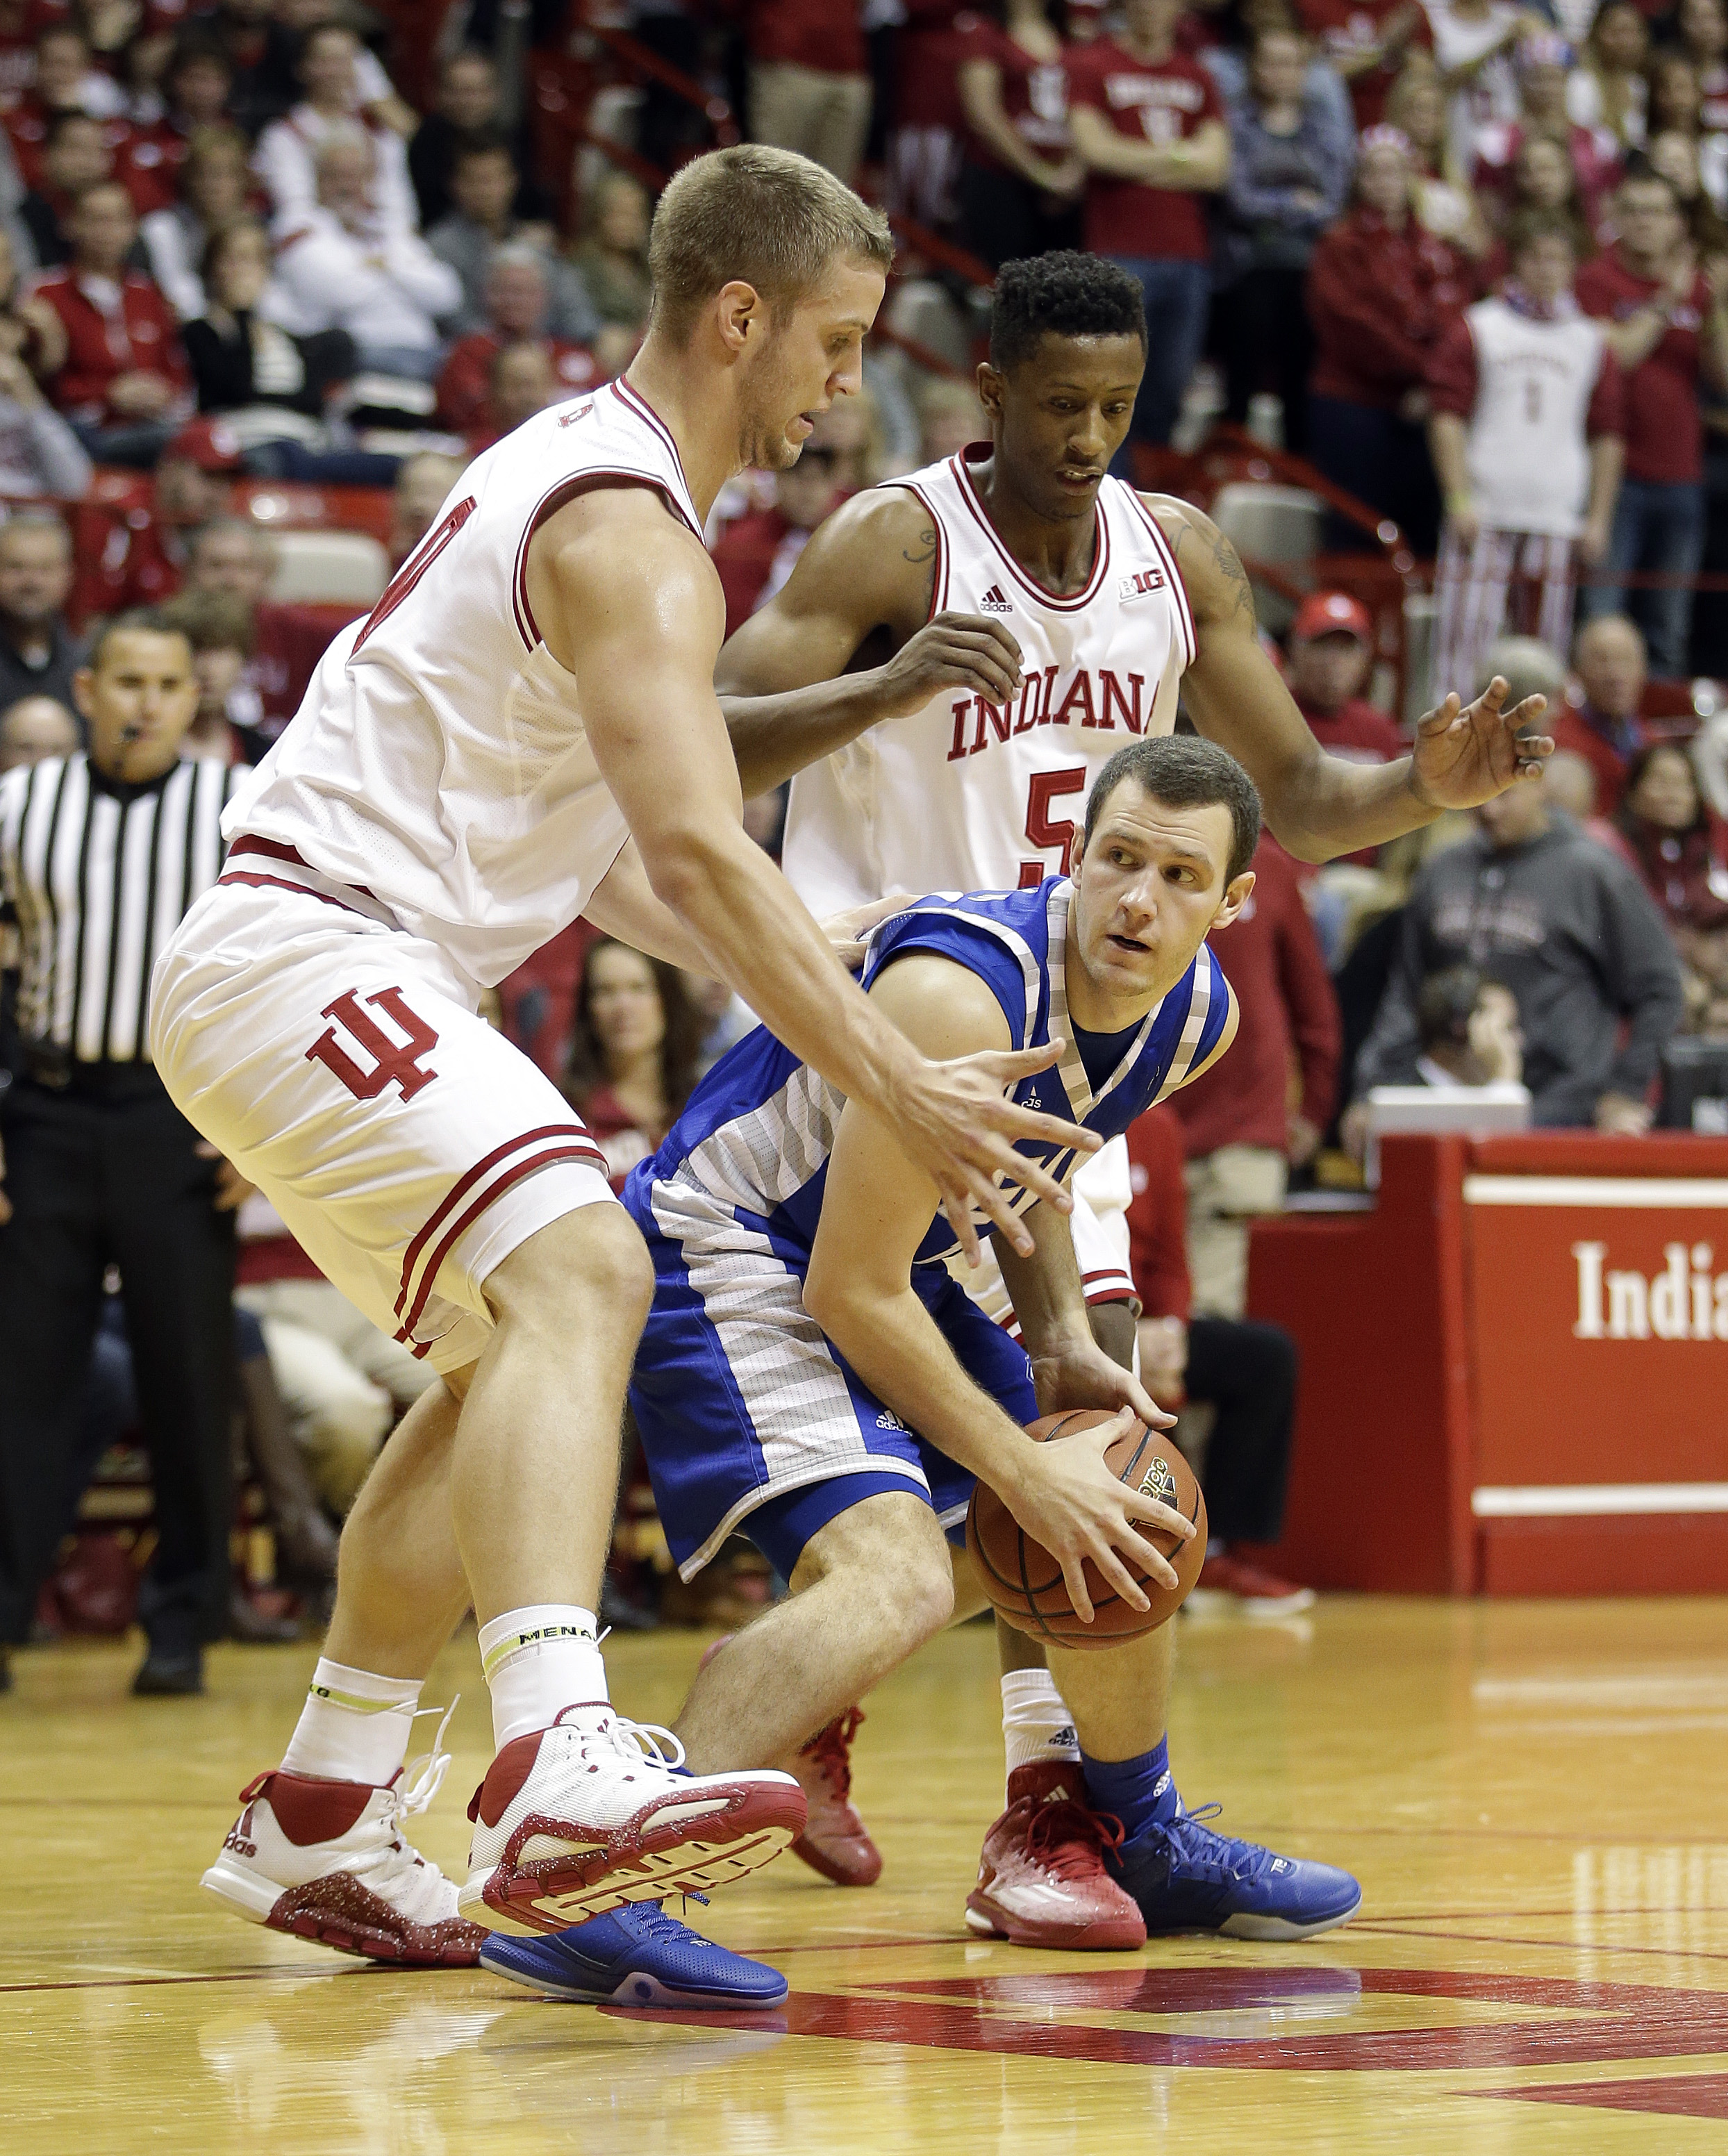 Eastern Illinois' Luke Norman (10) is defended by Indiana's Max Bielfeldt, left, and Troy Williams during the first half of an NCAA college basketball game Friday, Nov. 13, 2015, in Bloomington, Ind. (AP Photo/Darron Cummings)